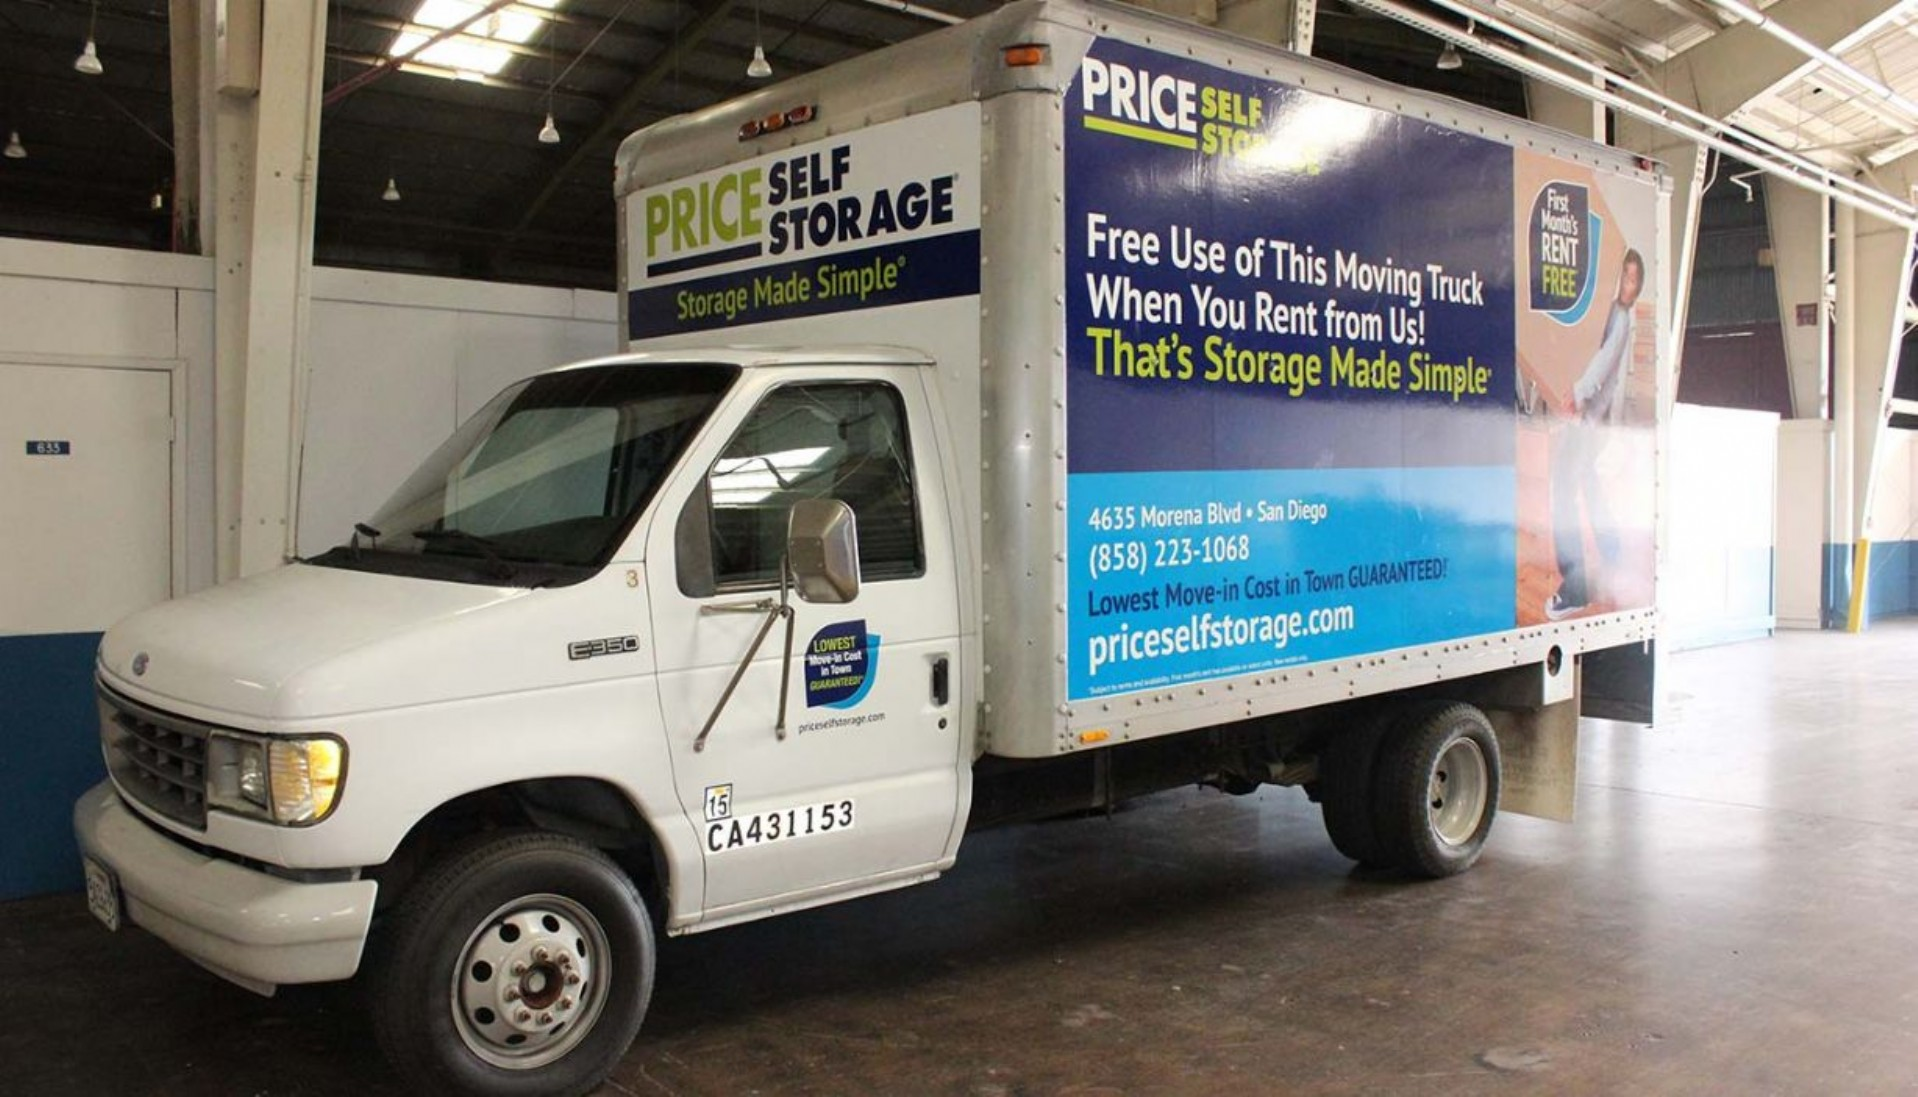 Price Self Storage Morena Blvd 14 ft. moving truck